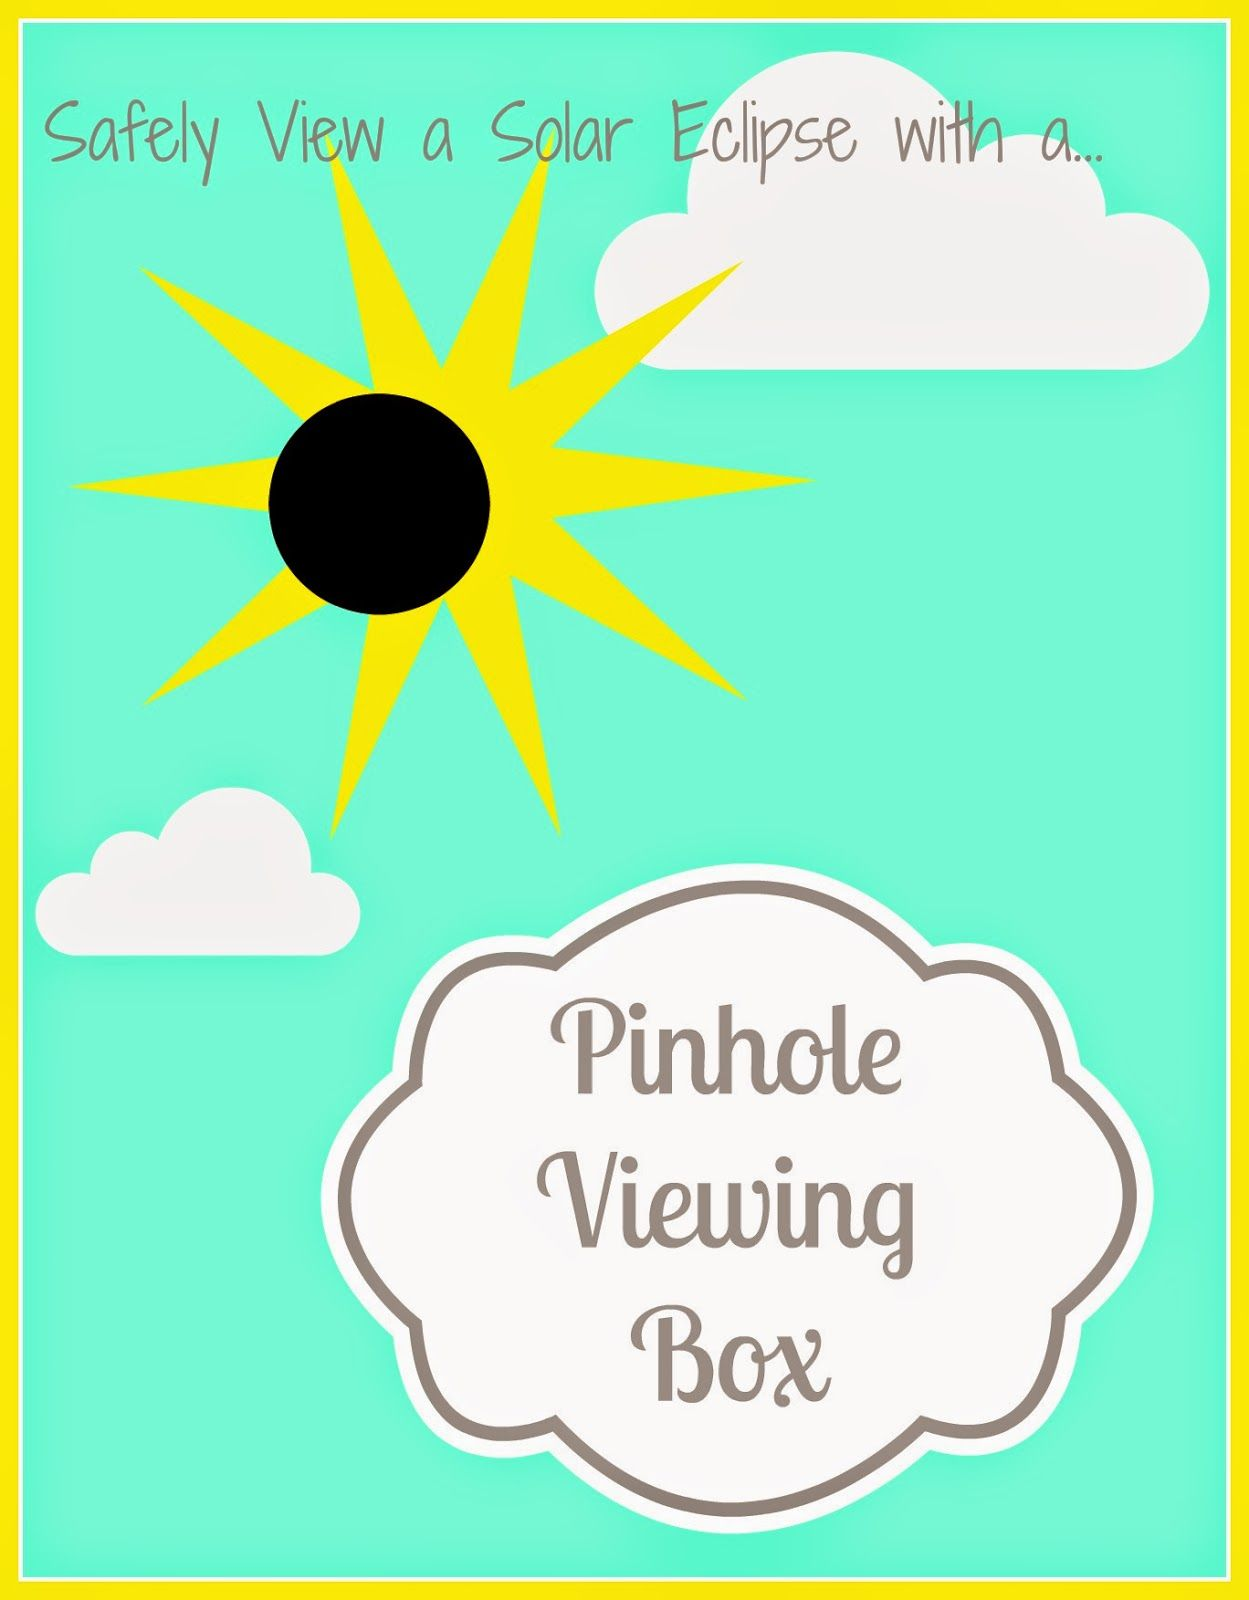 photo relating to Printable Solar Eclipse Glasses identified as Produce a Pinhole Browsing Box towards Securely Perspective the Sunlight Eclipse